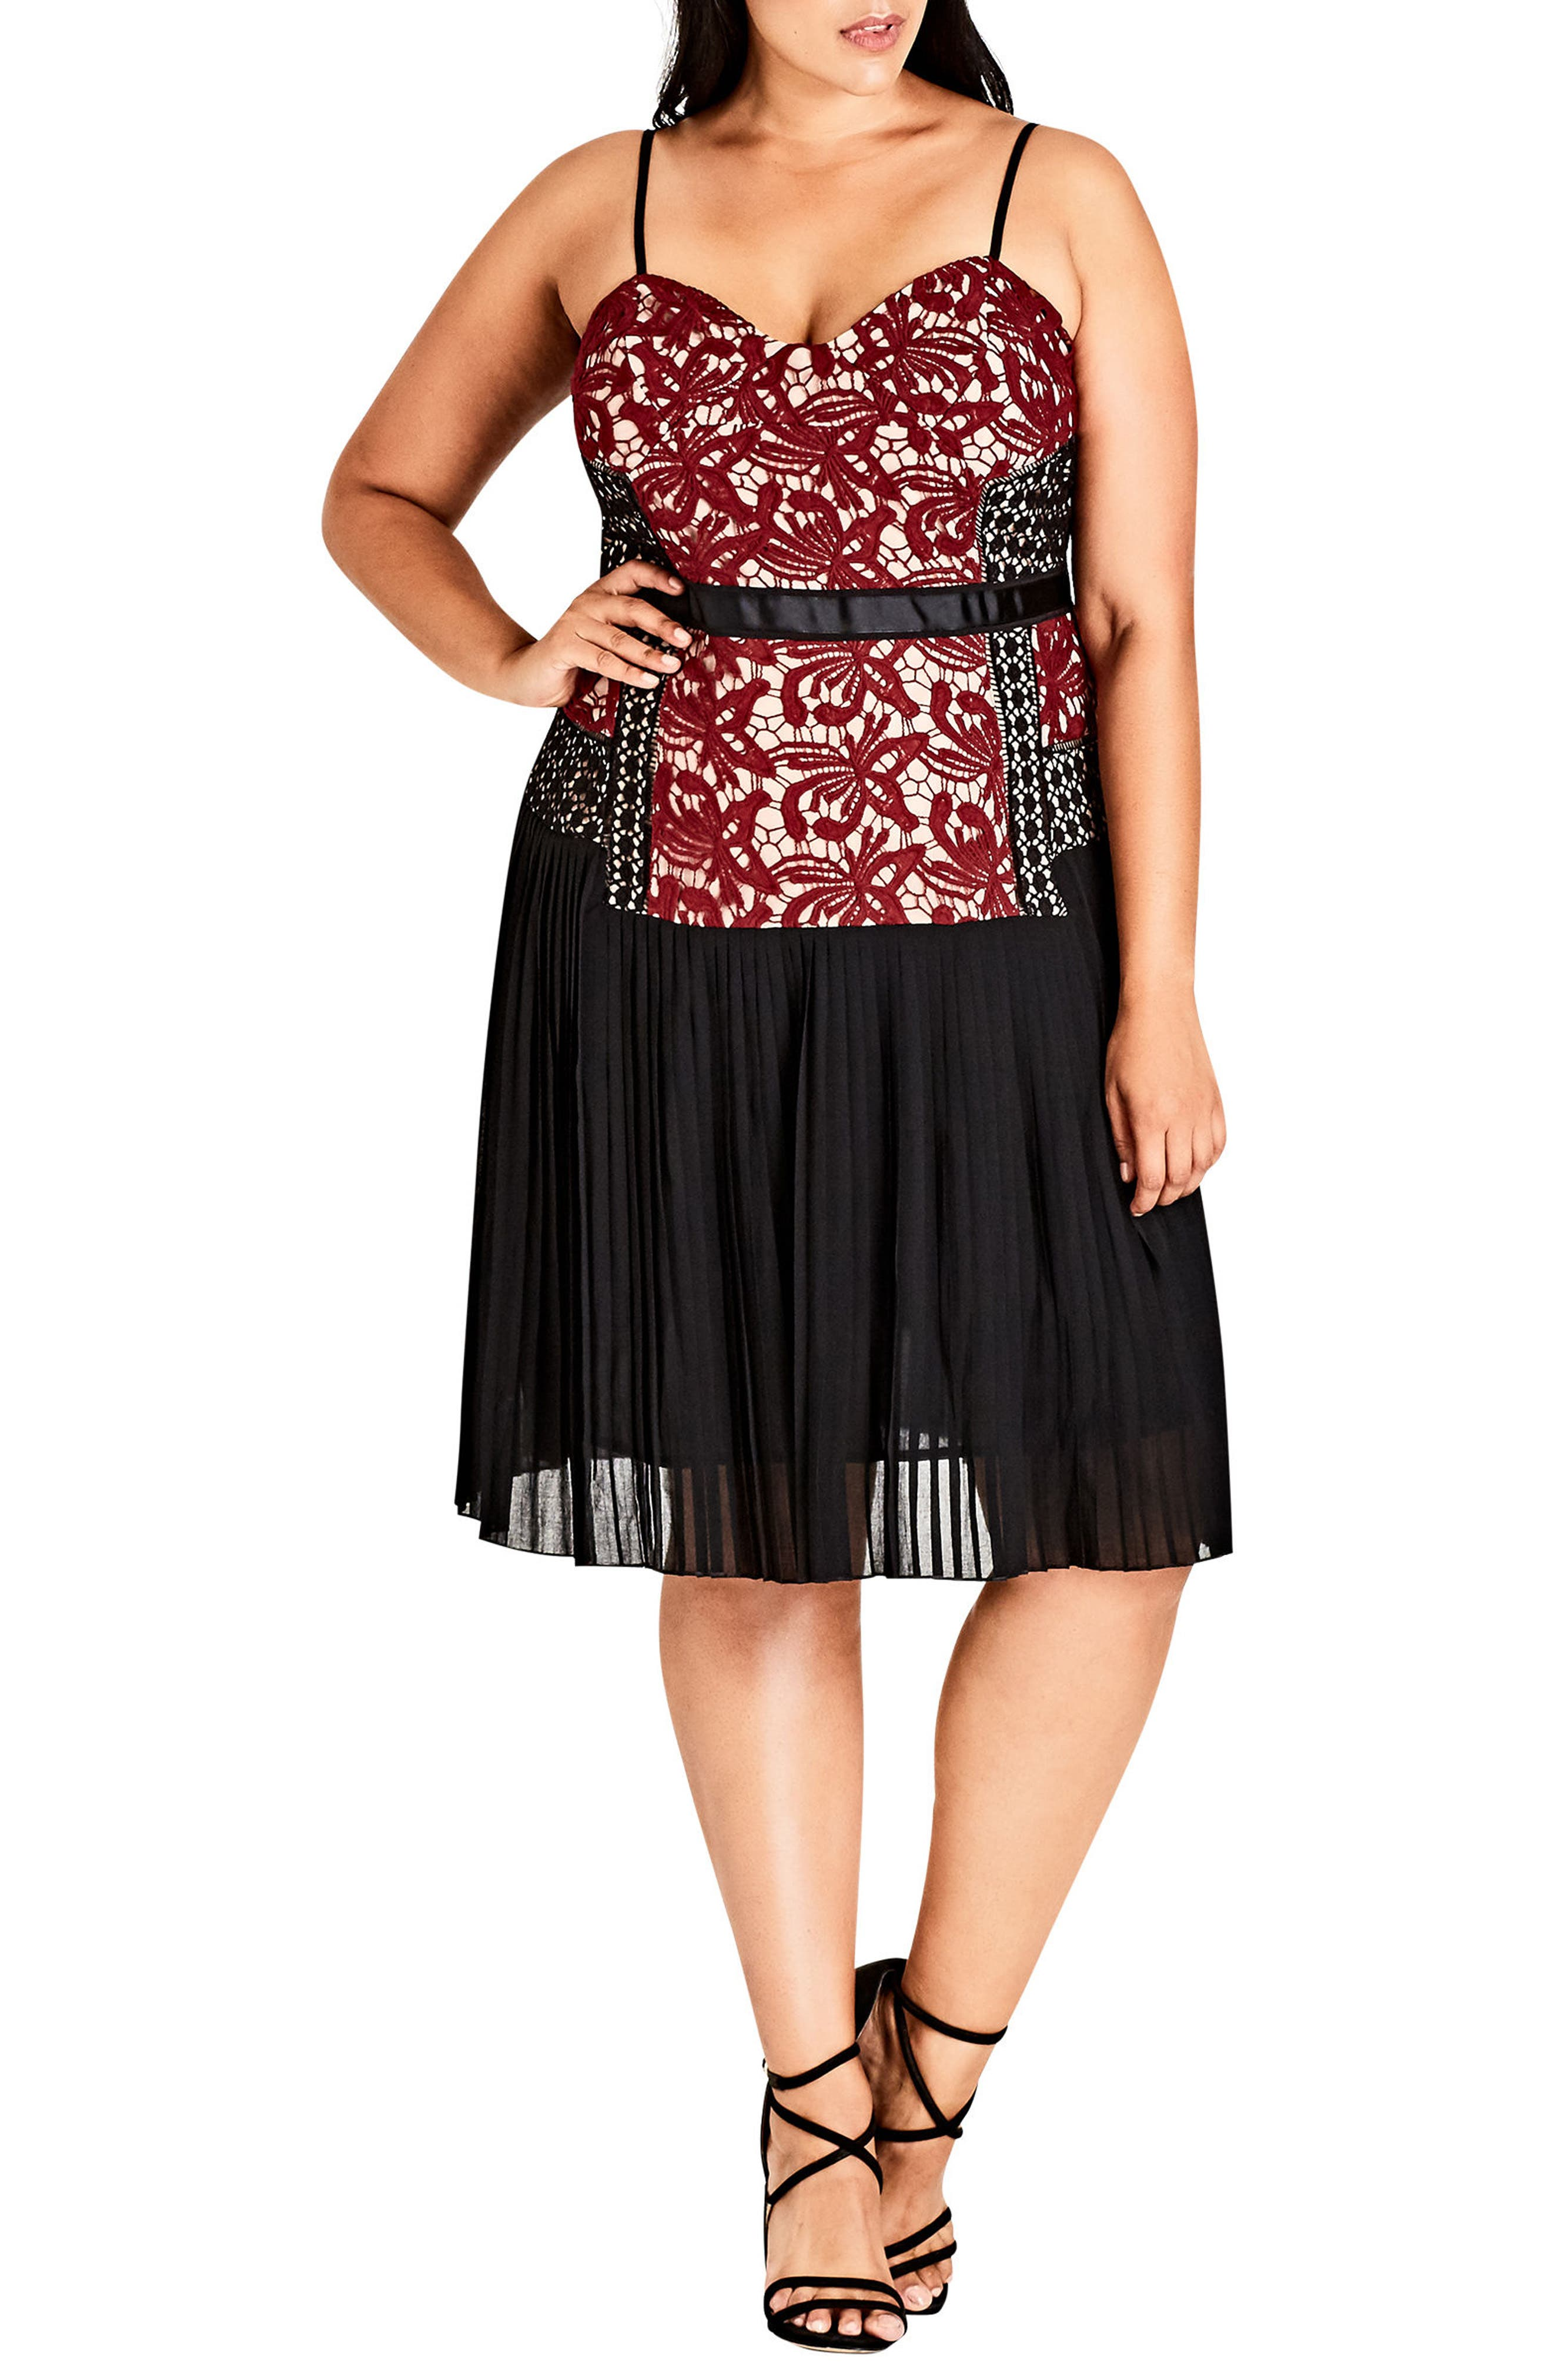 Alternate Image 1 Selected - City Chic Obey Me Dress (Plus Size)